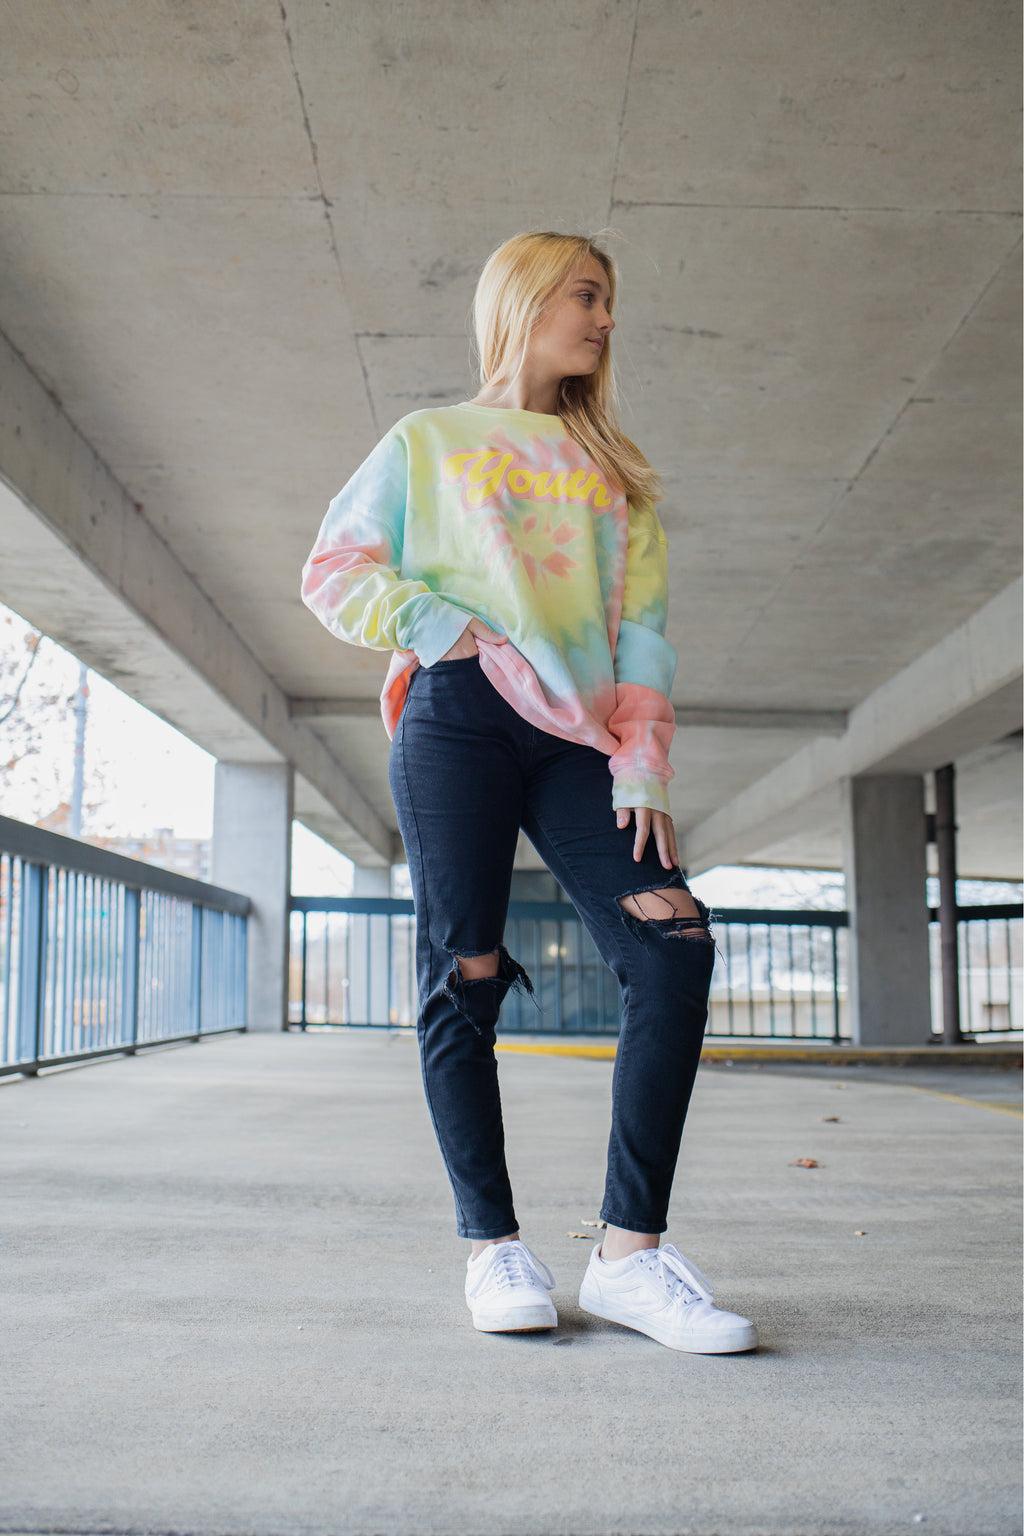 'Youth Tie dye' sweatshirt